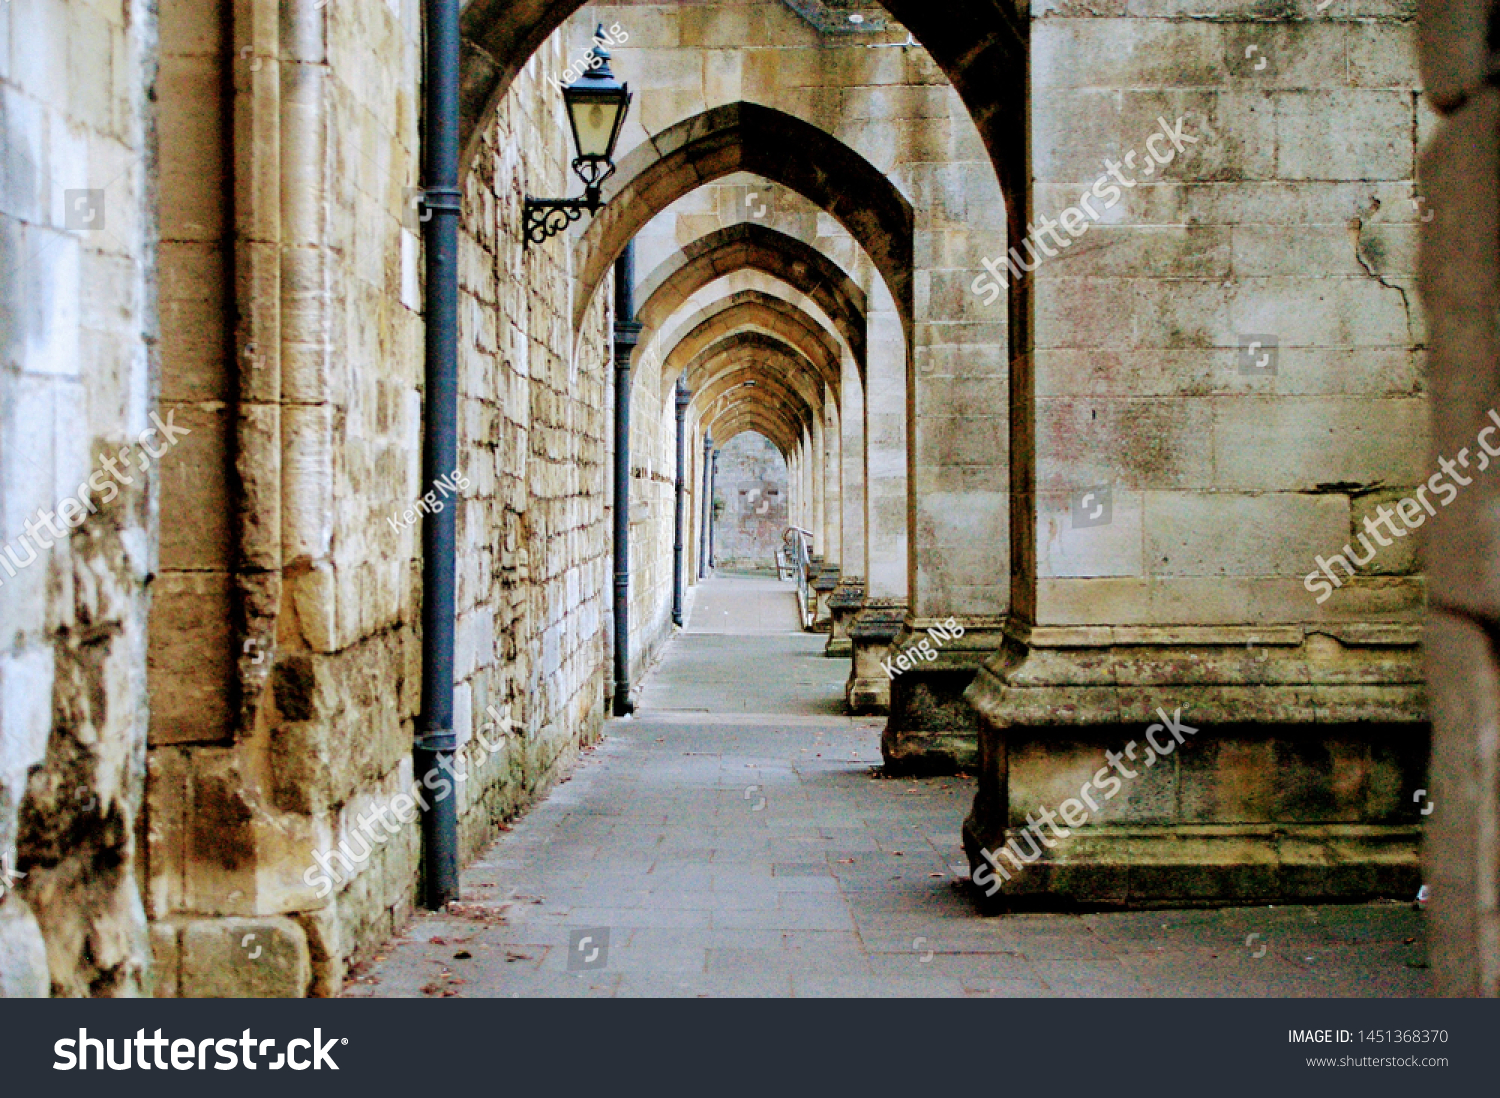 Great medieval engineering, looking through the arches underneath the flying buttresses of the Winchester Cathedral, UK